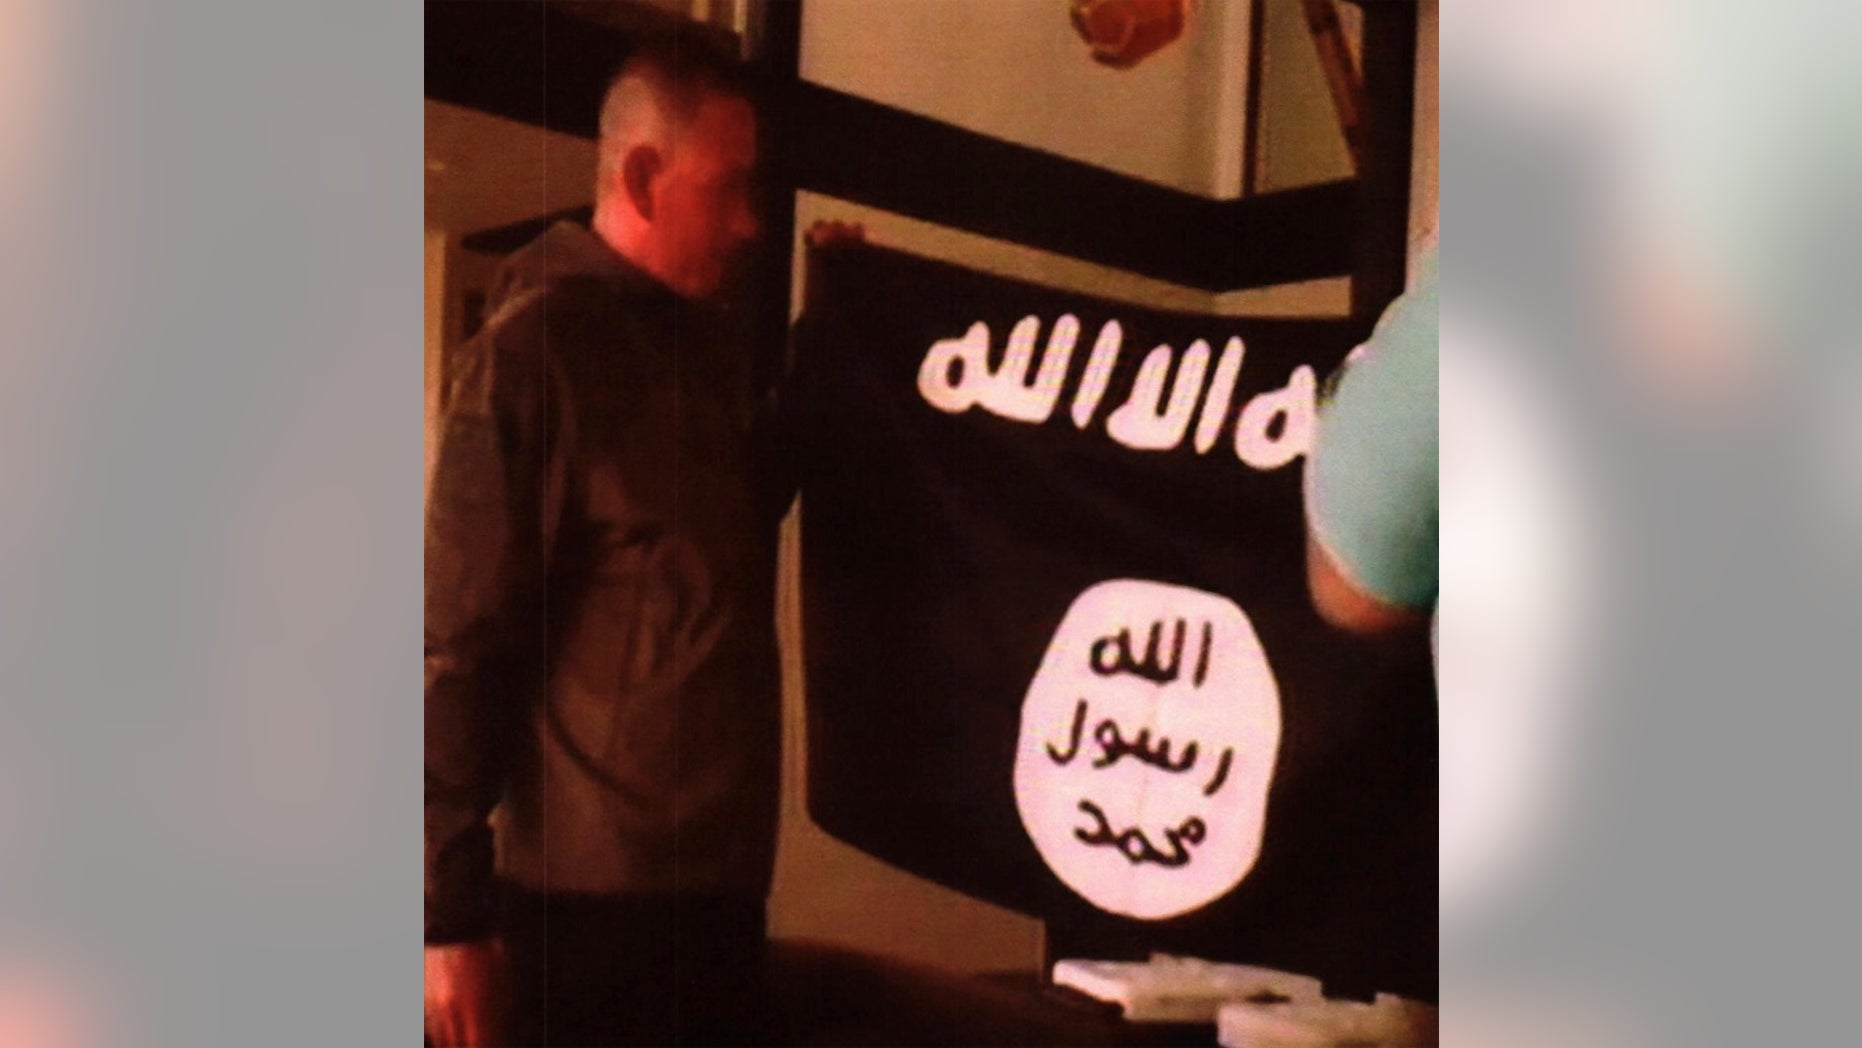 Army Sgt. 1st Class Ikaika Erik Kang has been indicted Friday by a federal grand jury in Hawaii for attempting to provide material support to ISIS.